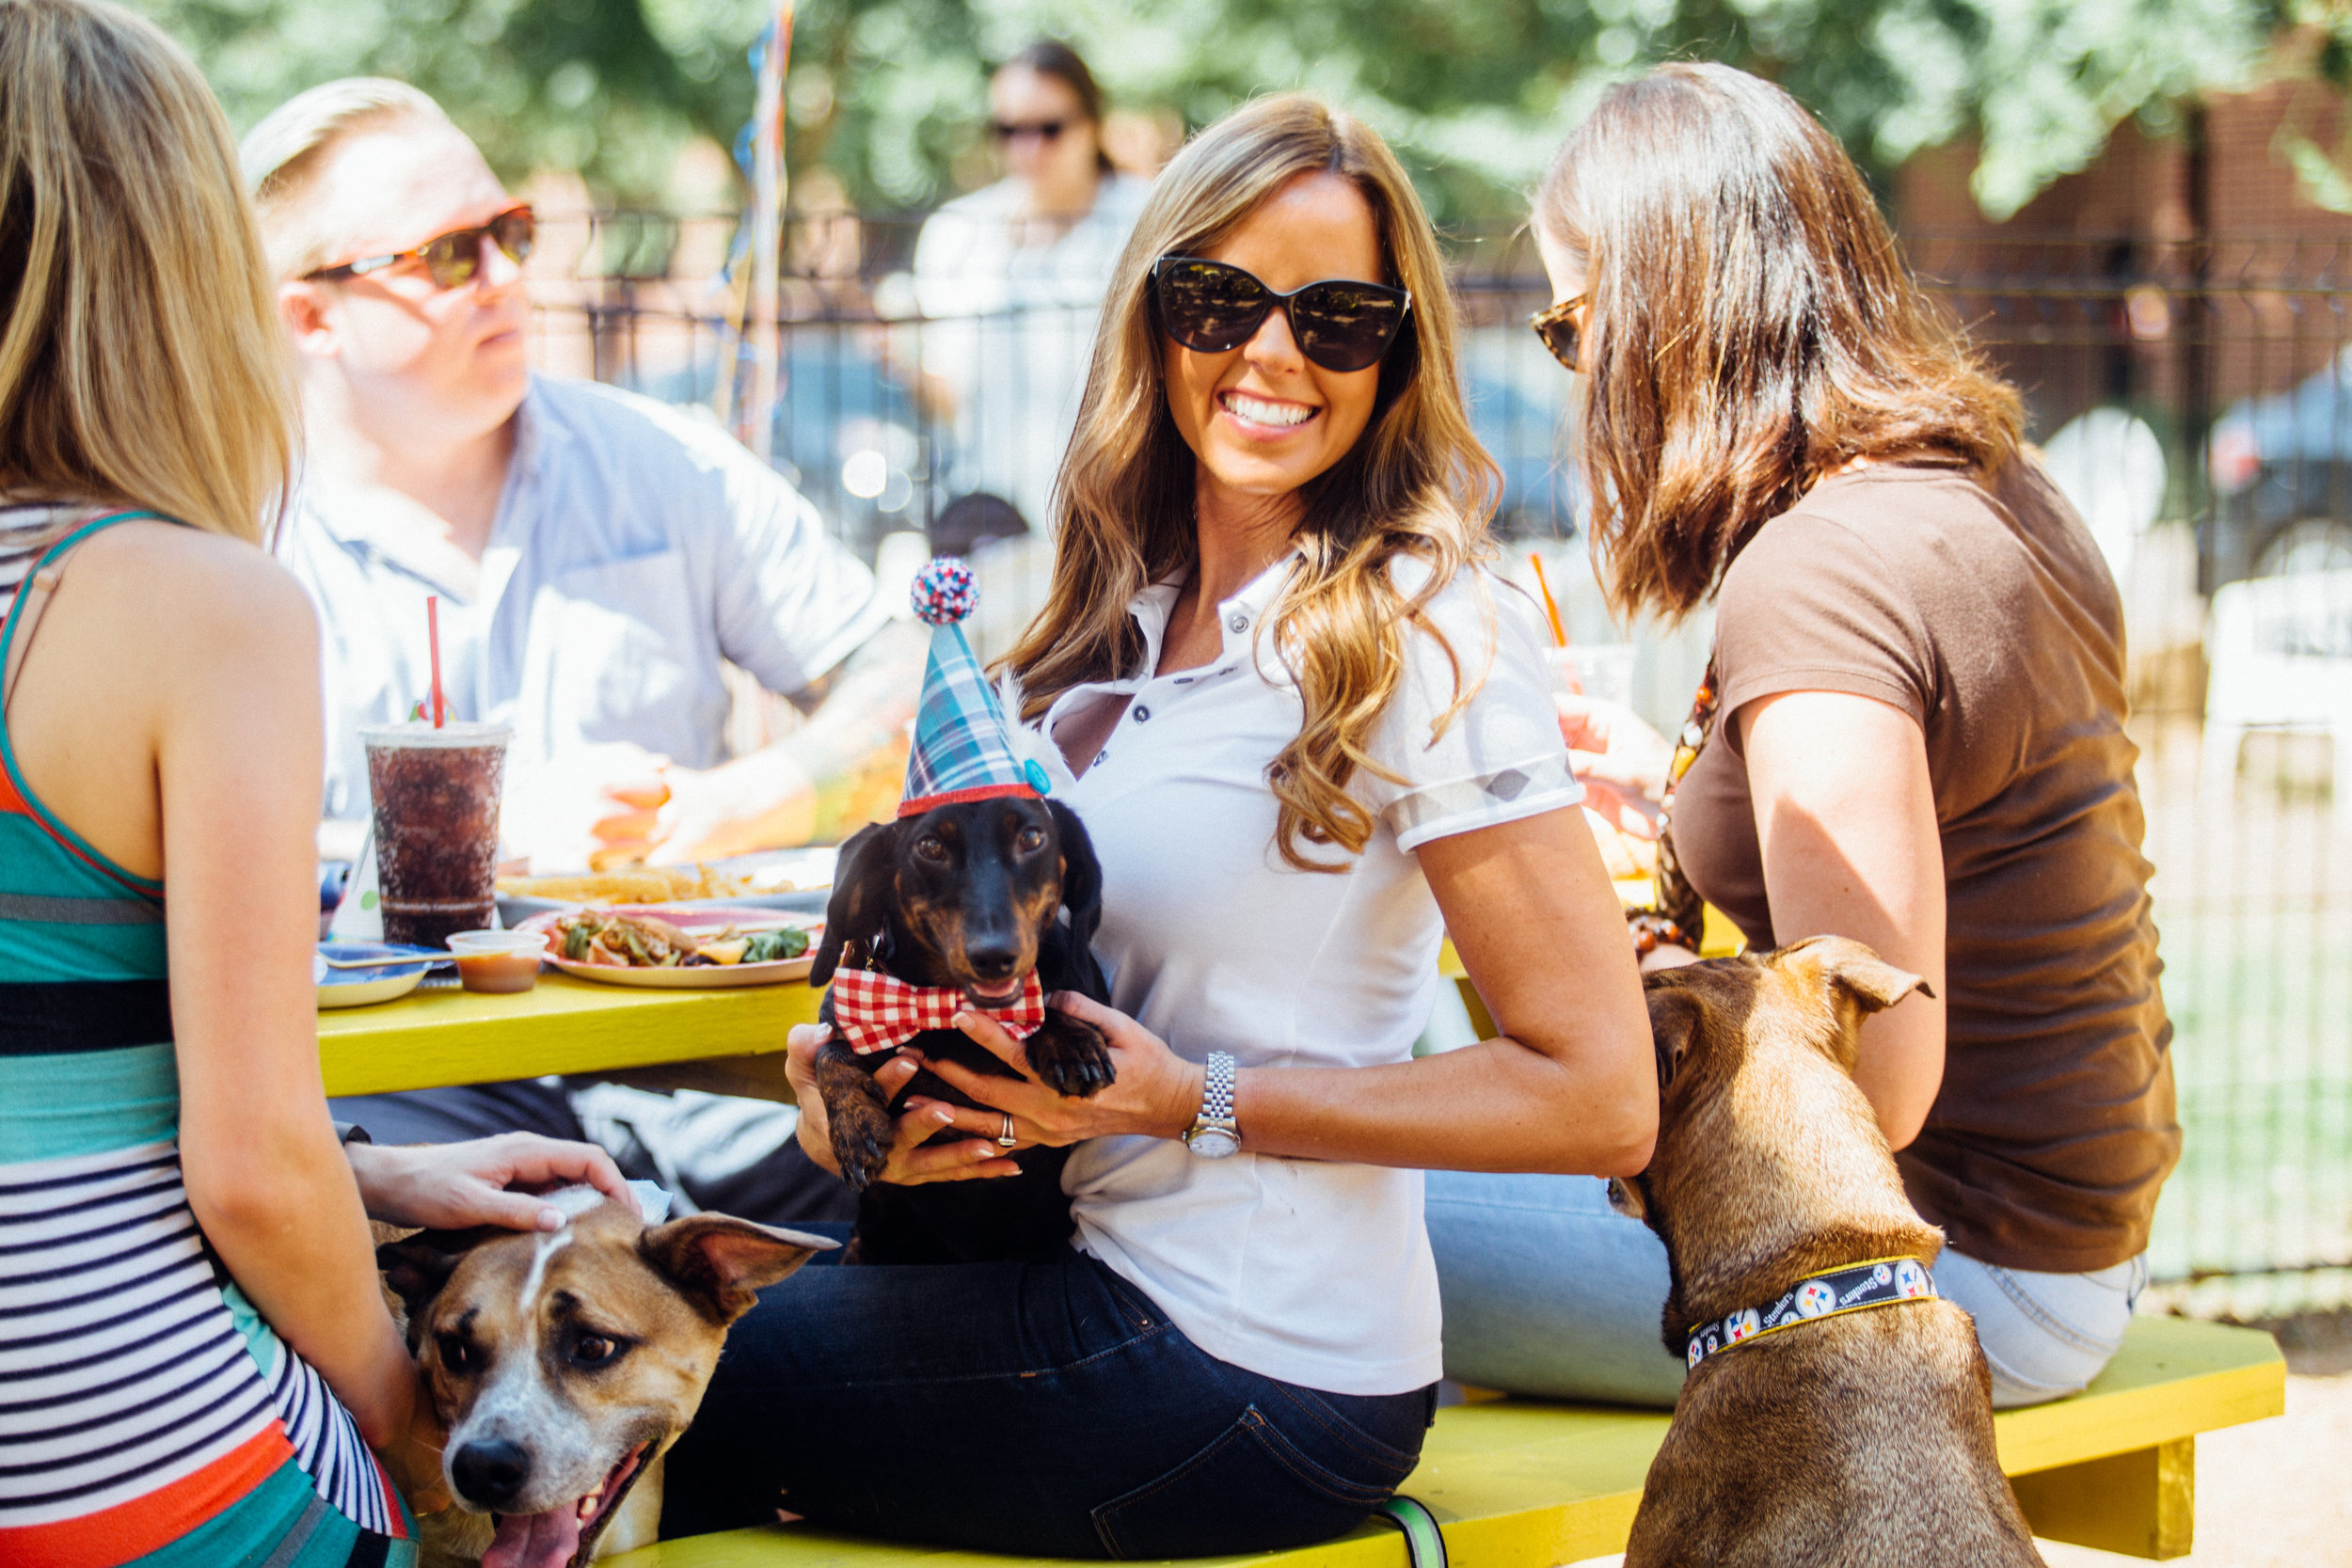 Millennials spend the most on their dogs including throwing lavish dog birthday parties!